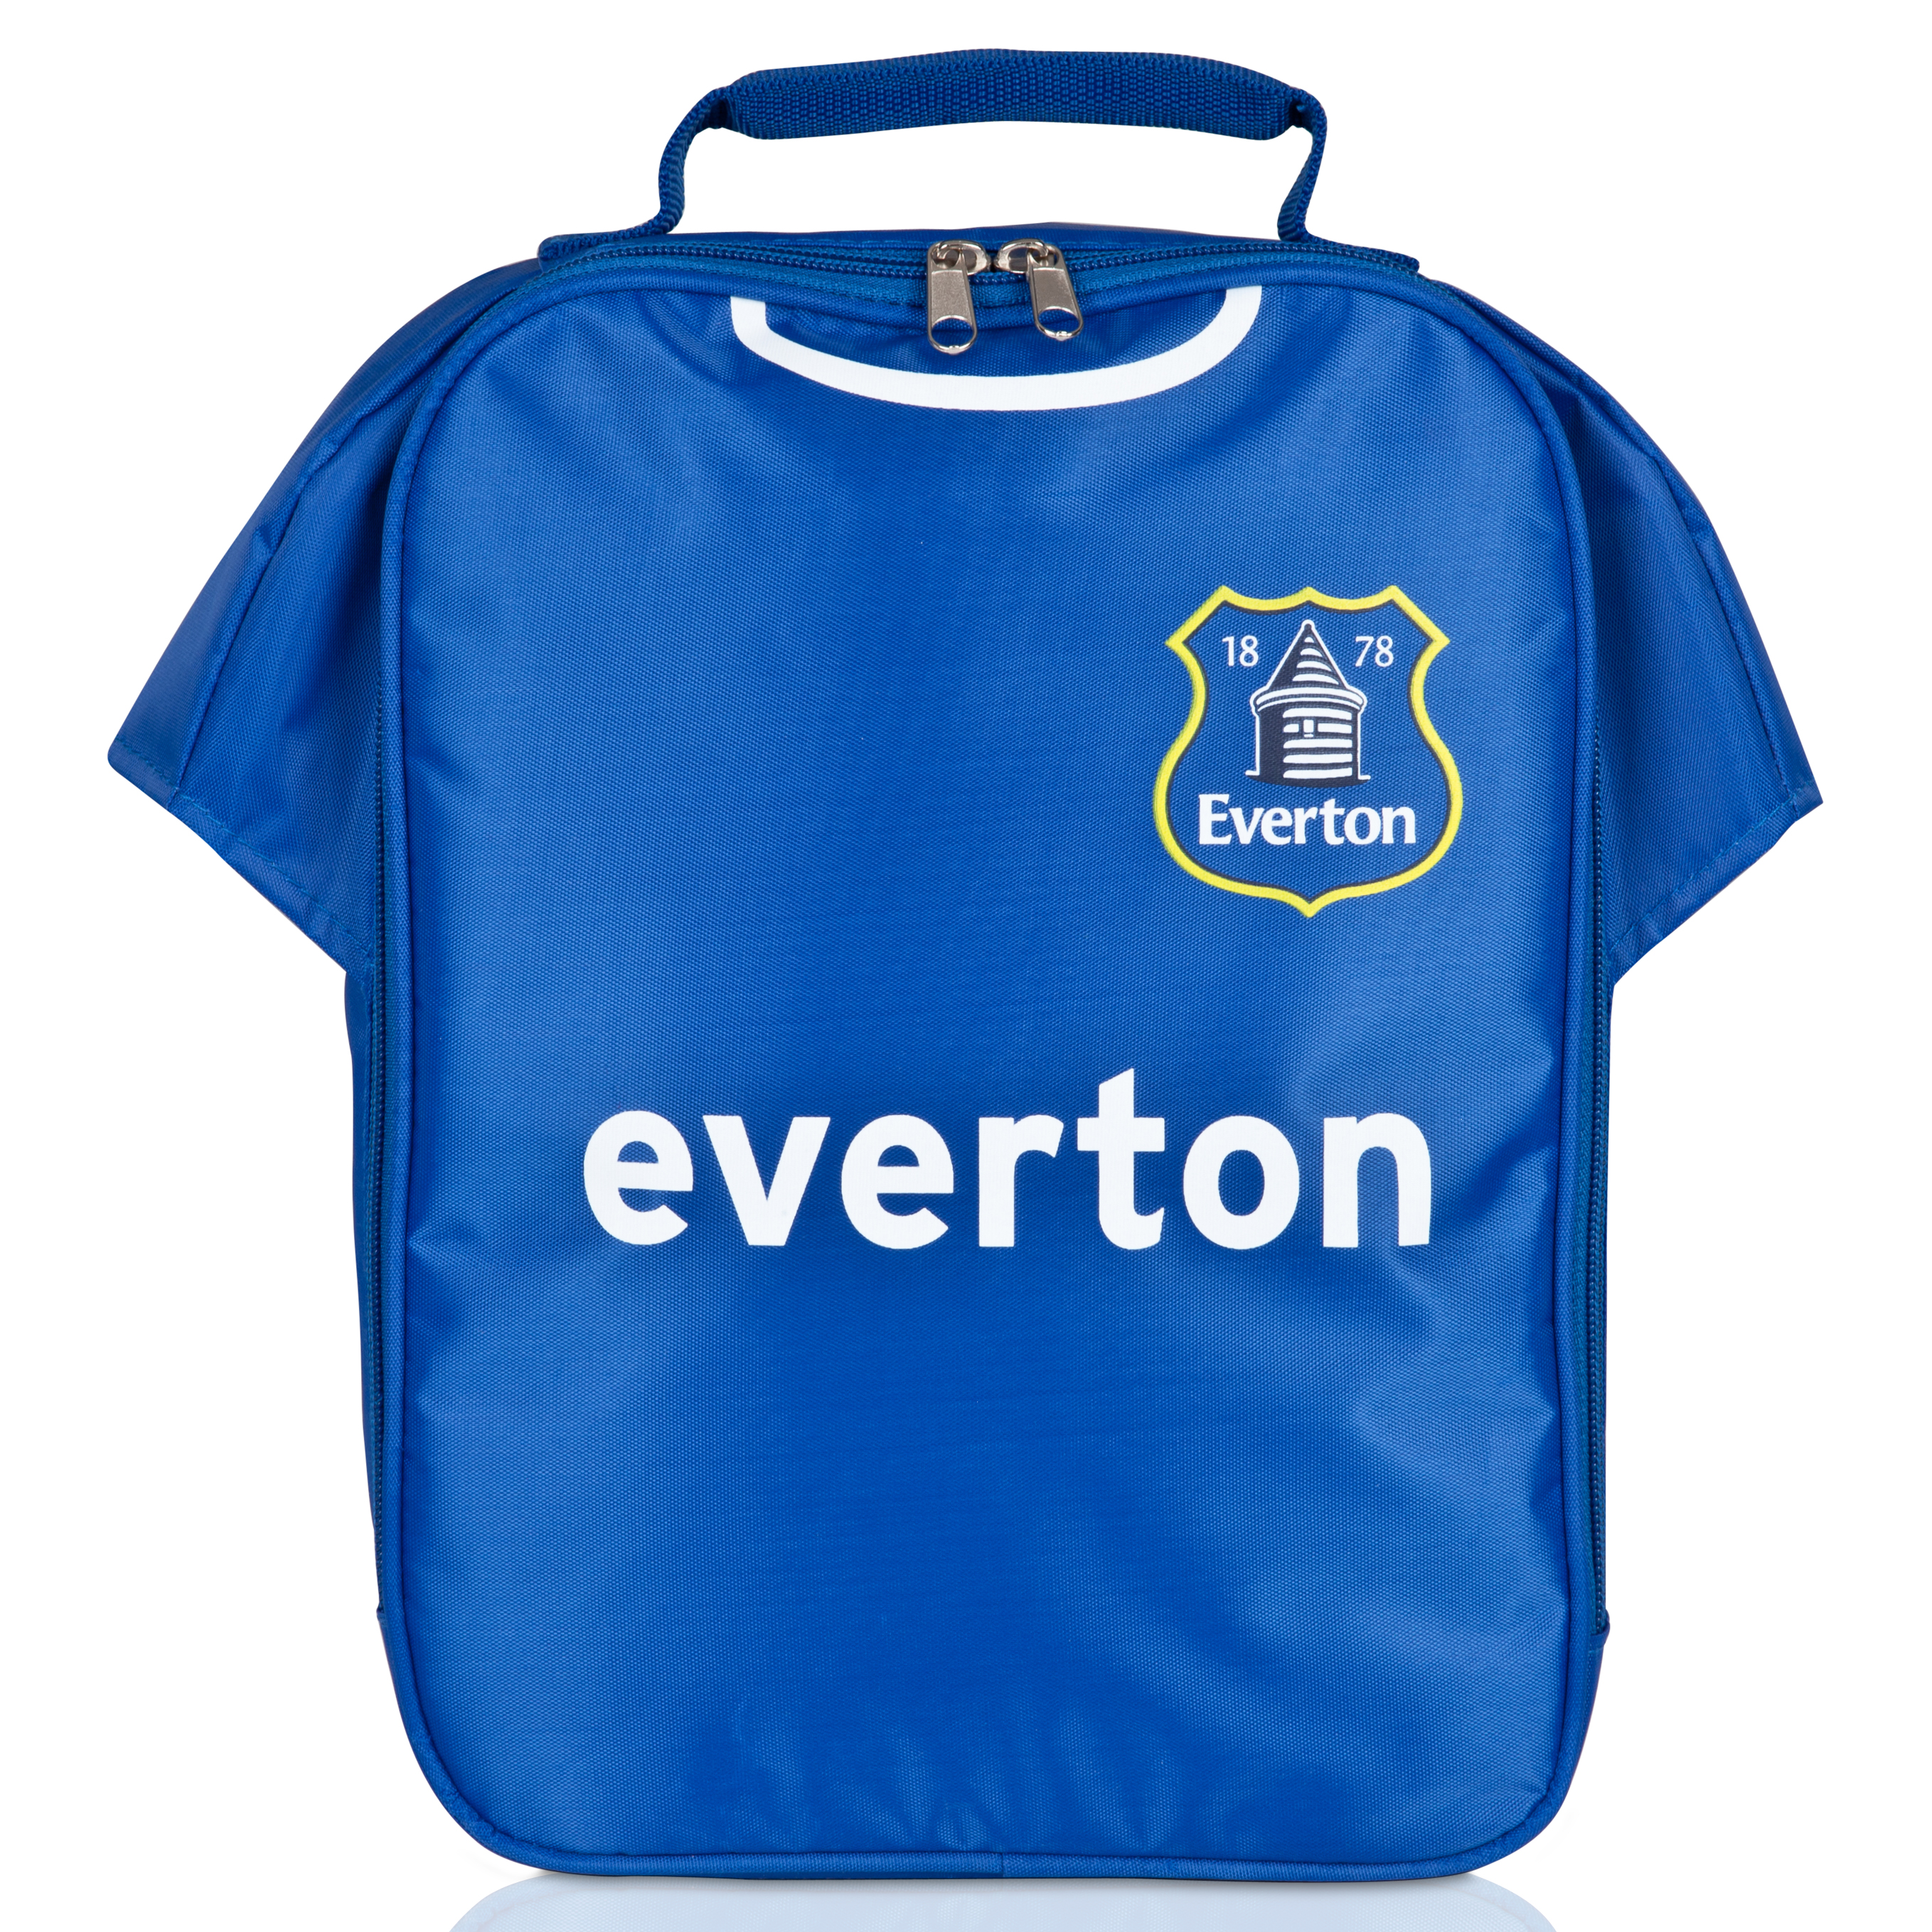 Everton Insulated Kit Lunch Bag